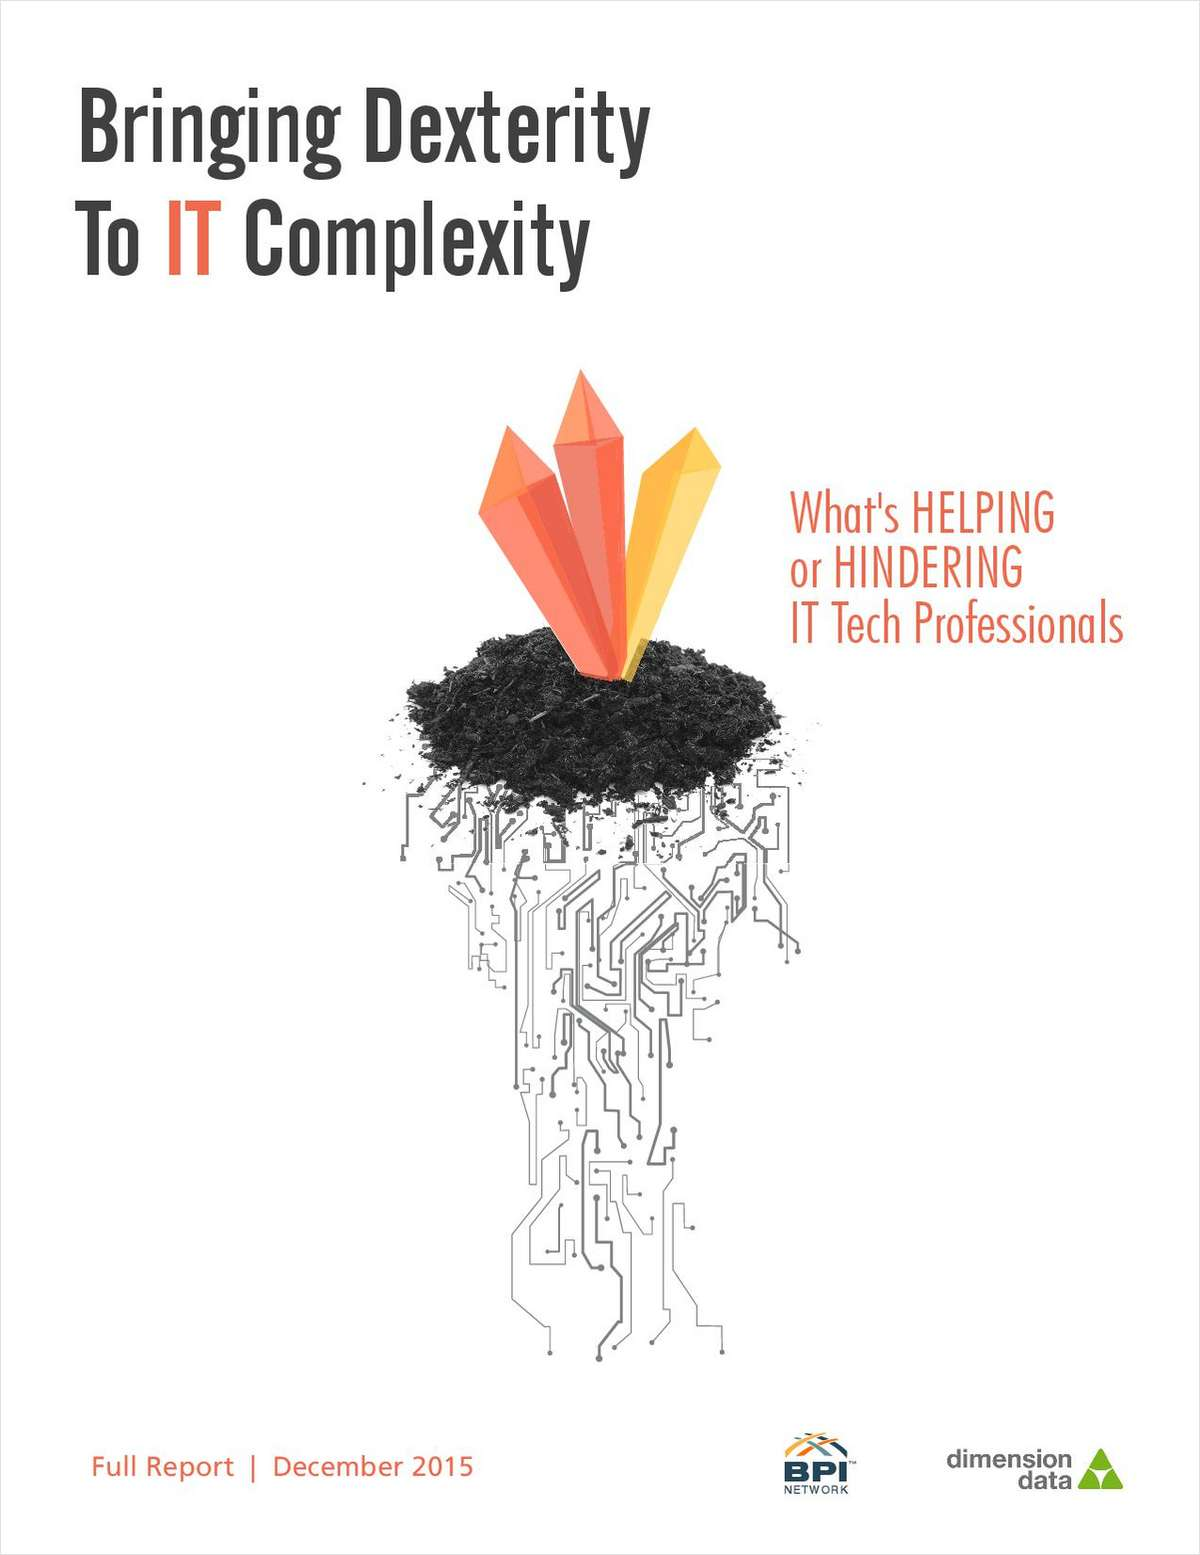 Bringing Dexterity to IT Complexity: What